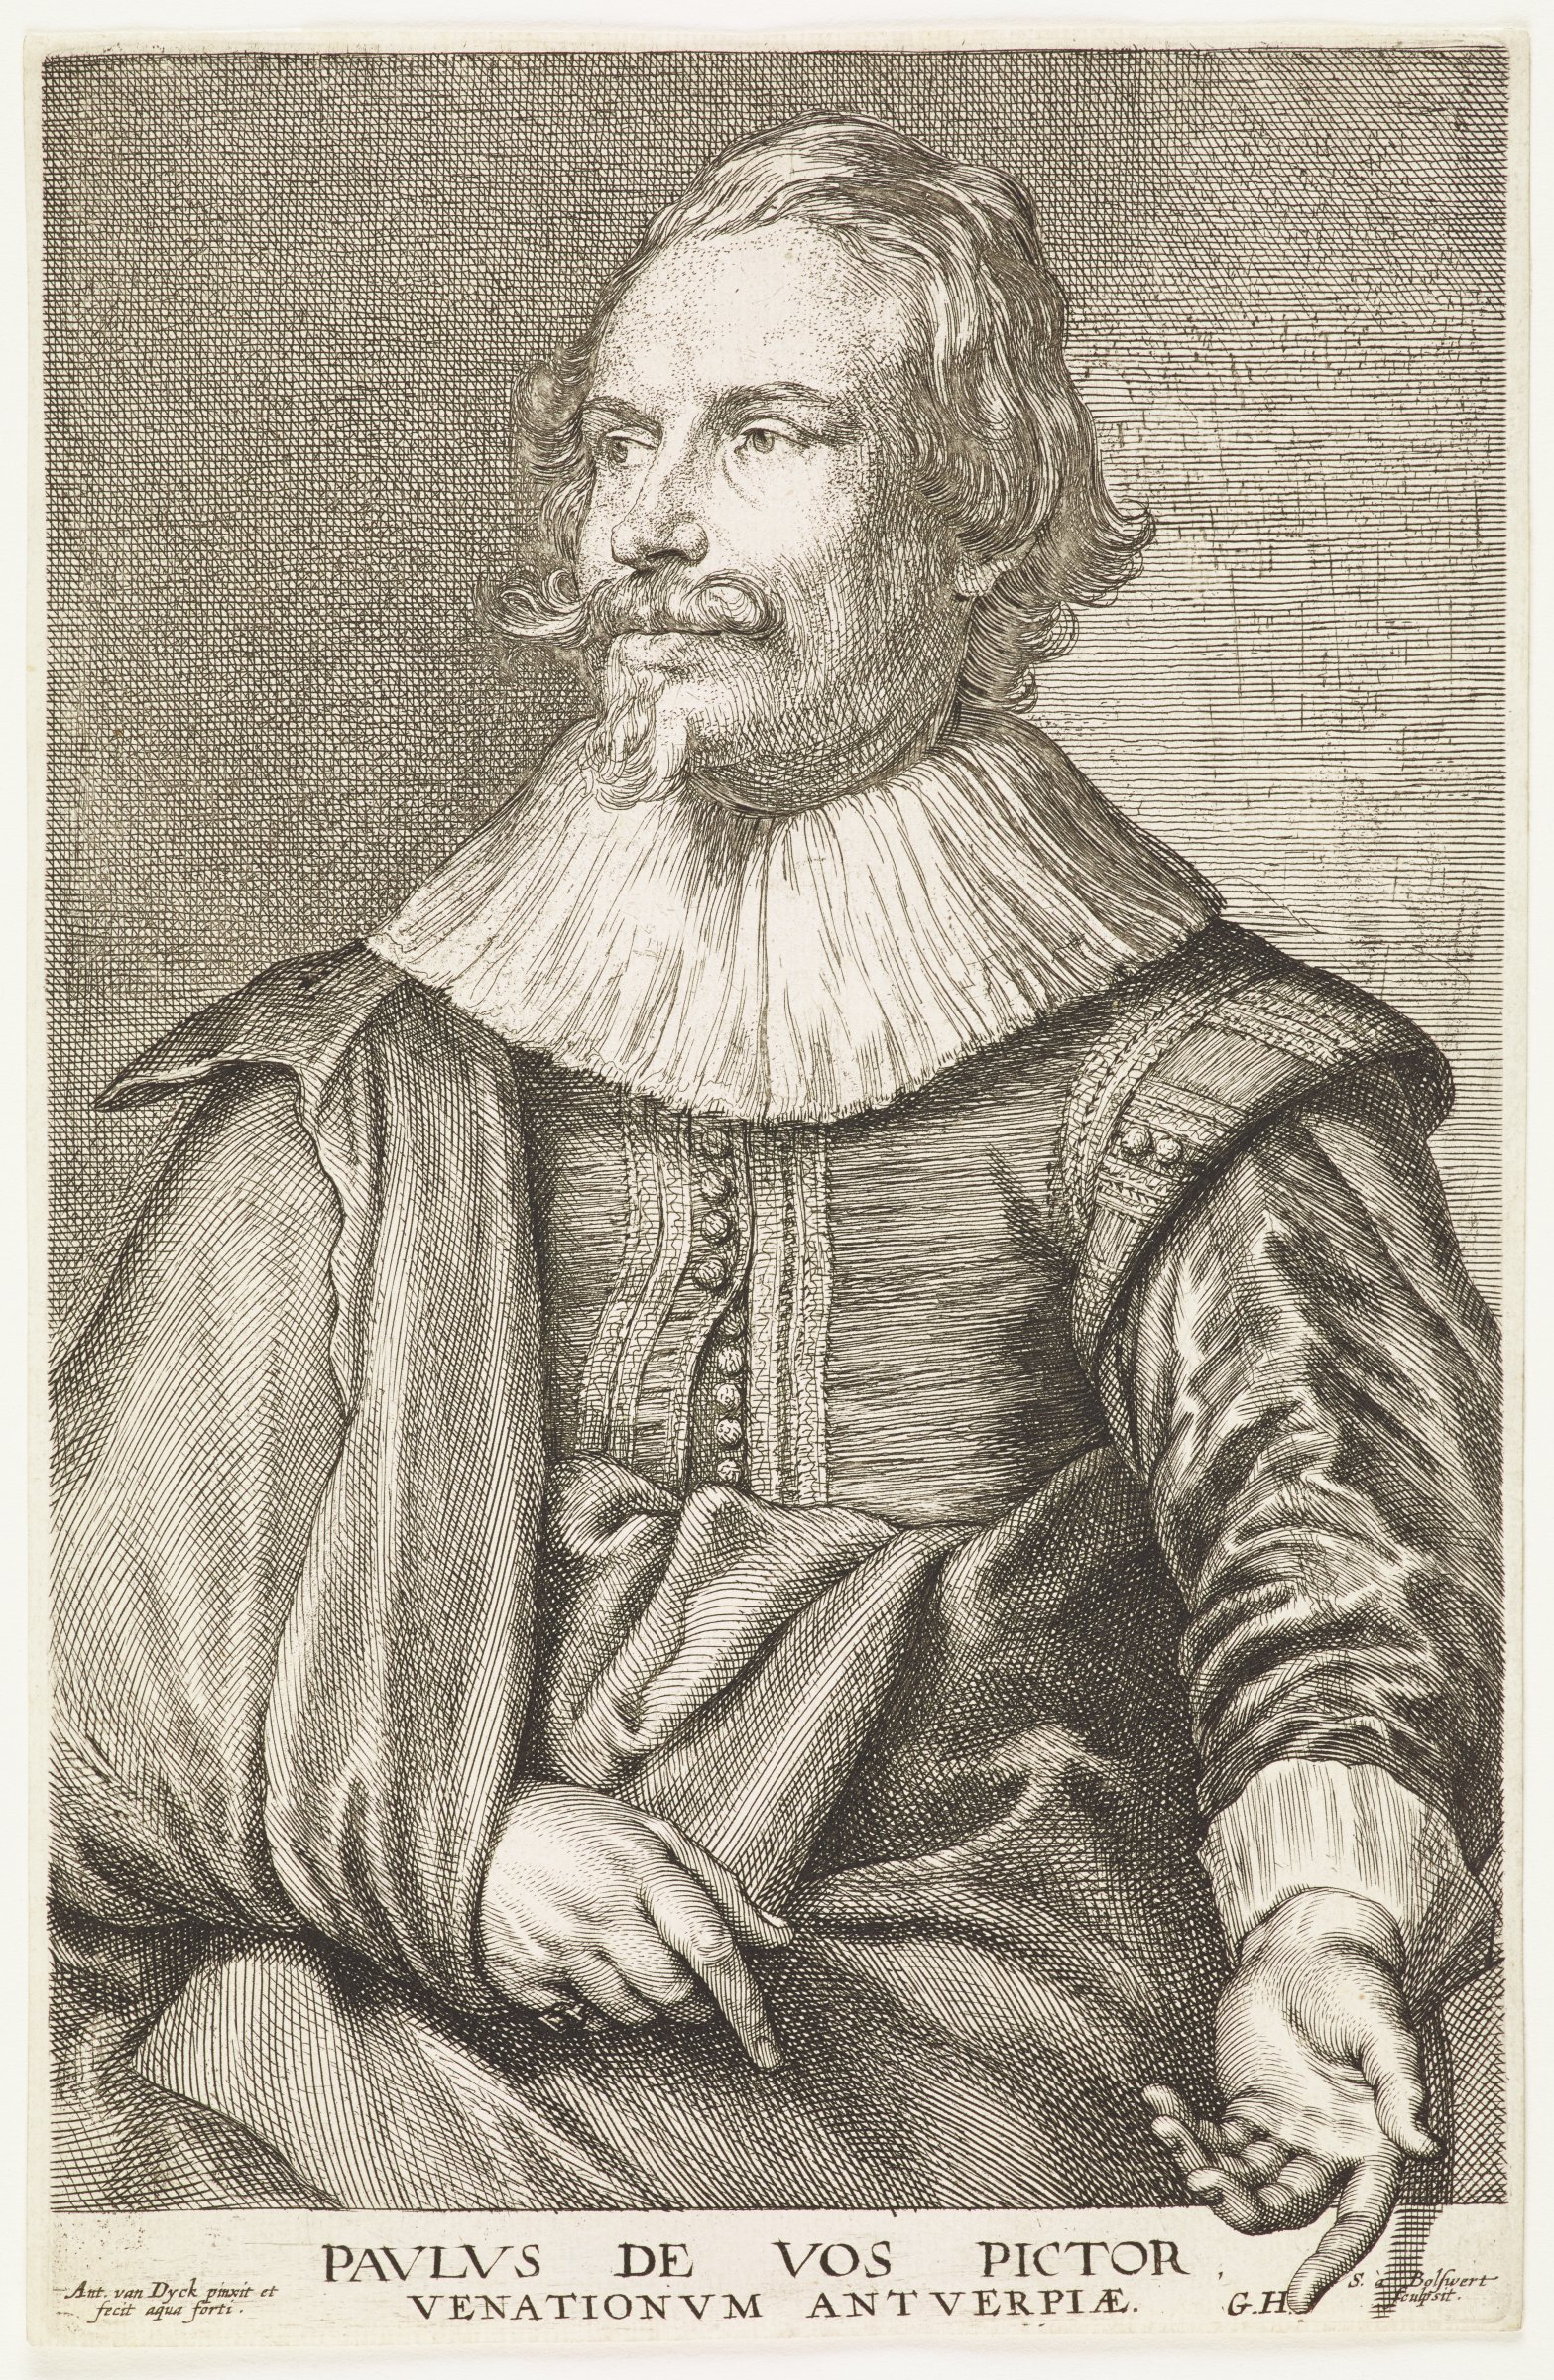 Paul de Vos was a painter. He is seen here in portrait from the waist up. He wears a tall, wide collar with a costume that buttons up the chest and contains a cloak. He holds his left hand out past the image margin into the text field. This is from the Gillis Hendricx edition of the Iconography (Icones Principum Virorum Doctorum, Pictorum Chalcographorum Statuorum nec non Amatorum Pictoriae Artis Numero Centum), 1632-44.